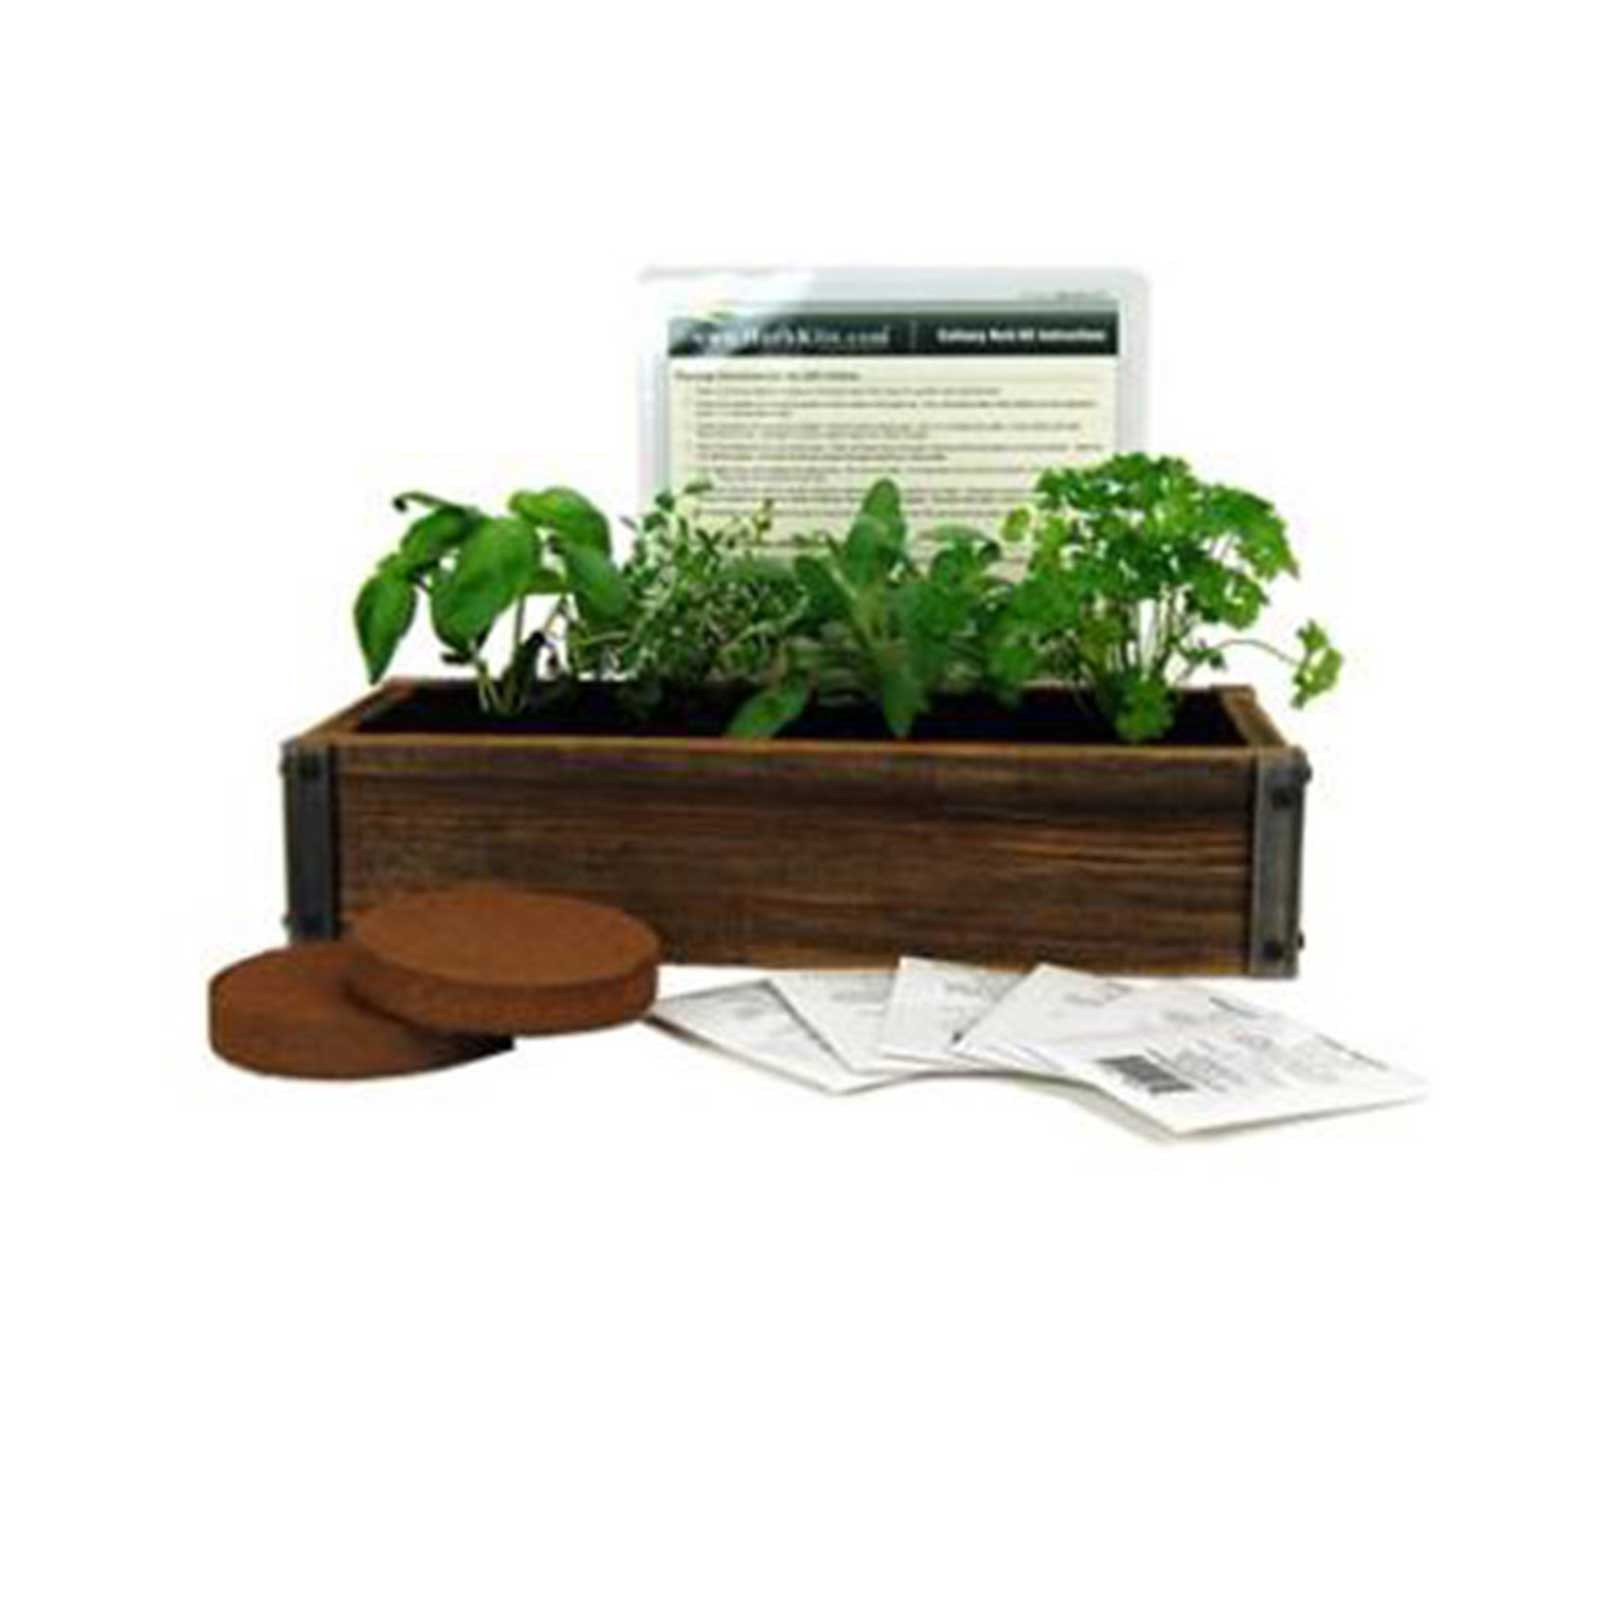 Grow Your Own Culinary Herbs Right In Your Own Kitchen With This Rustic  Planter Box Made From Reclaimed Barn Wood. Complete Kit Includes Barnwood  Planter, ...